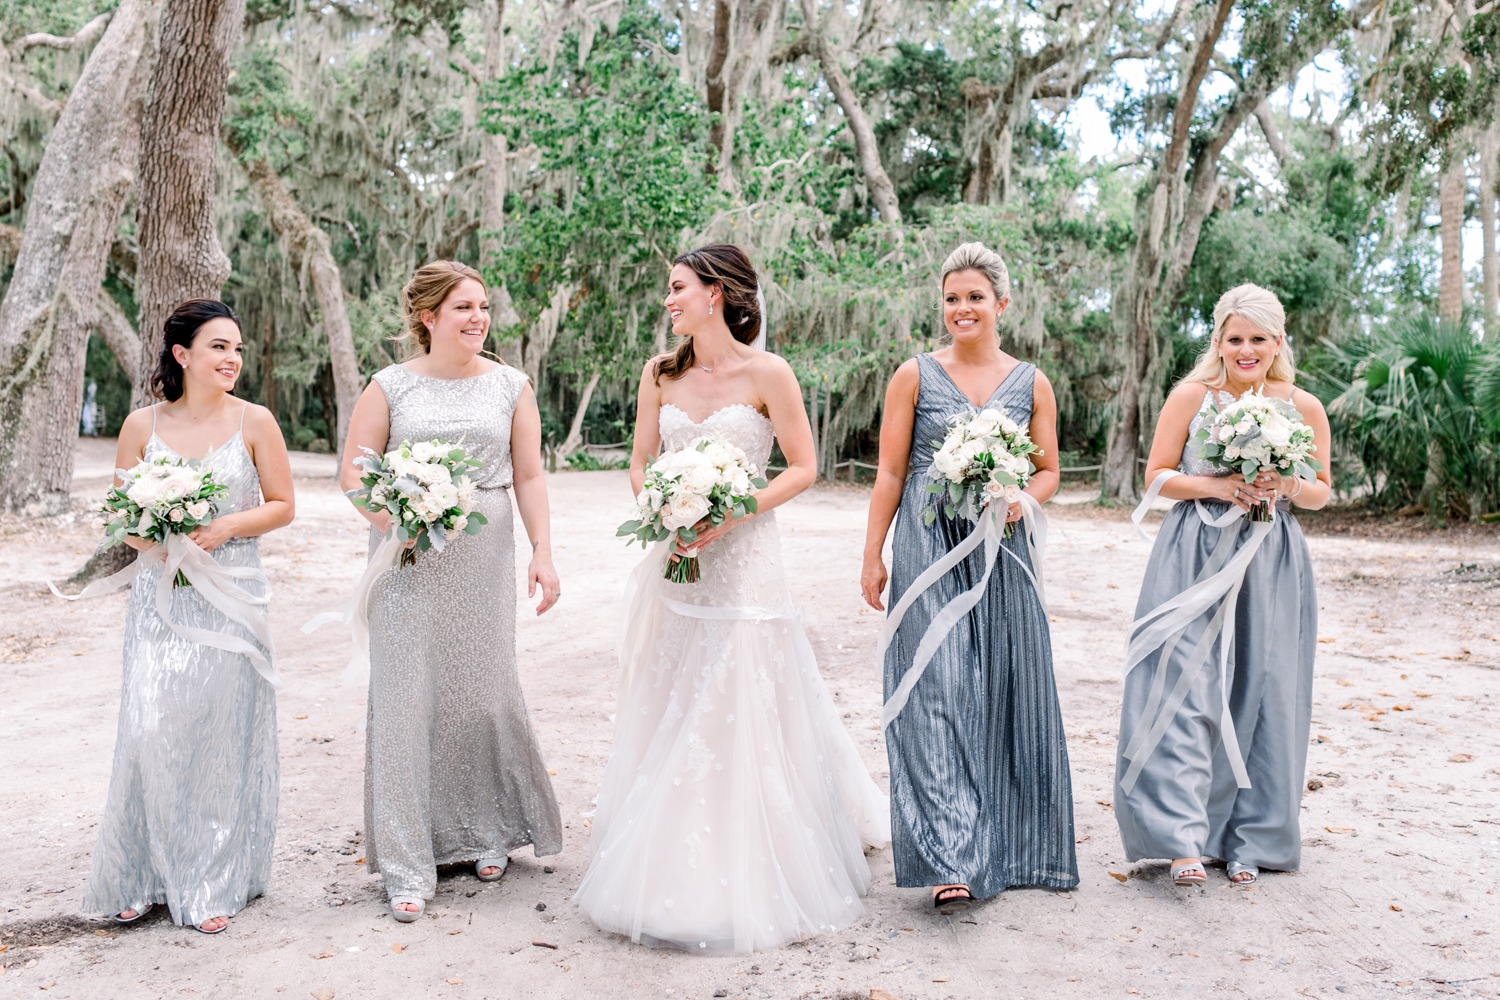 Mismatched silver bridesmaid dresses